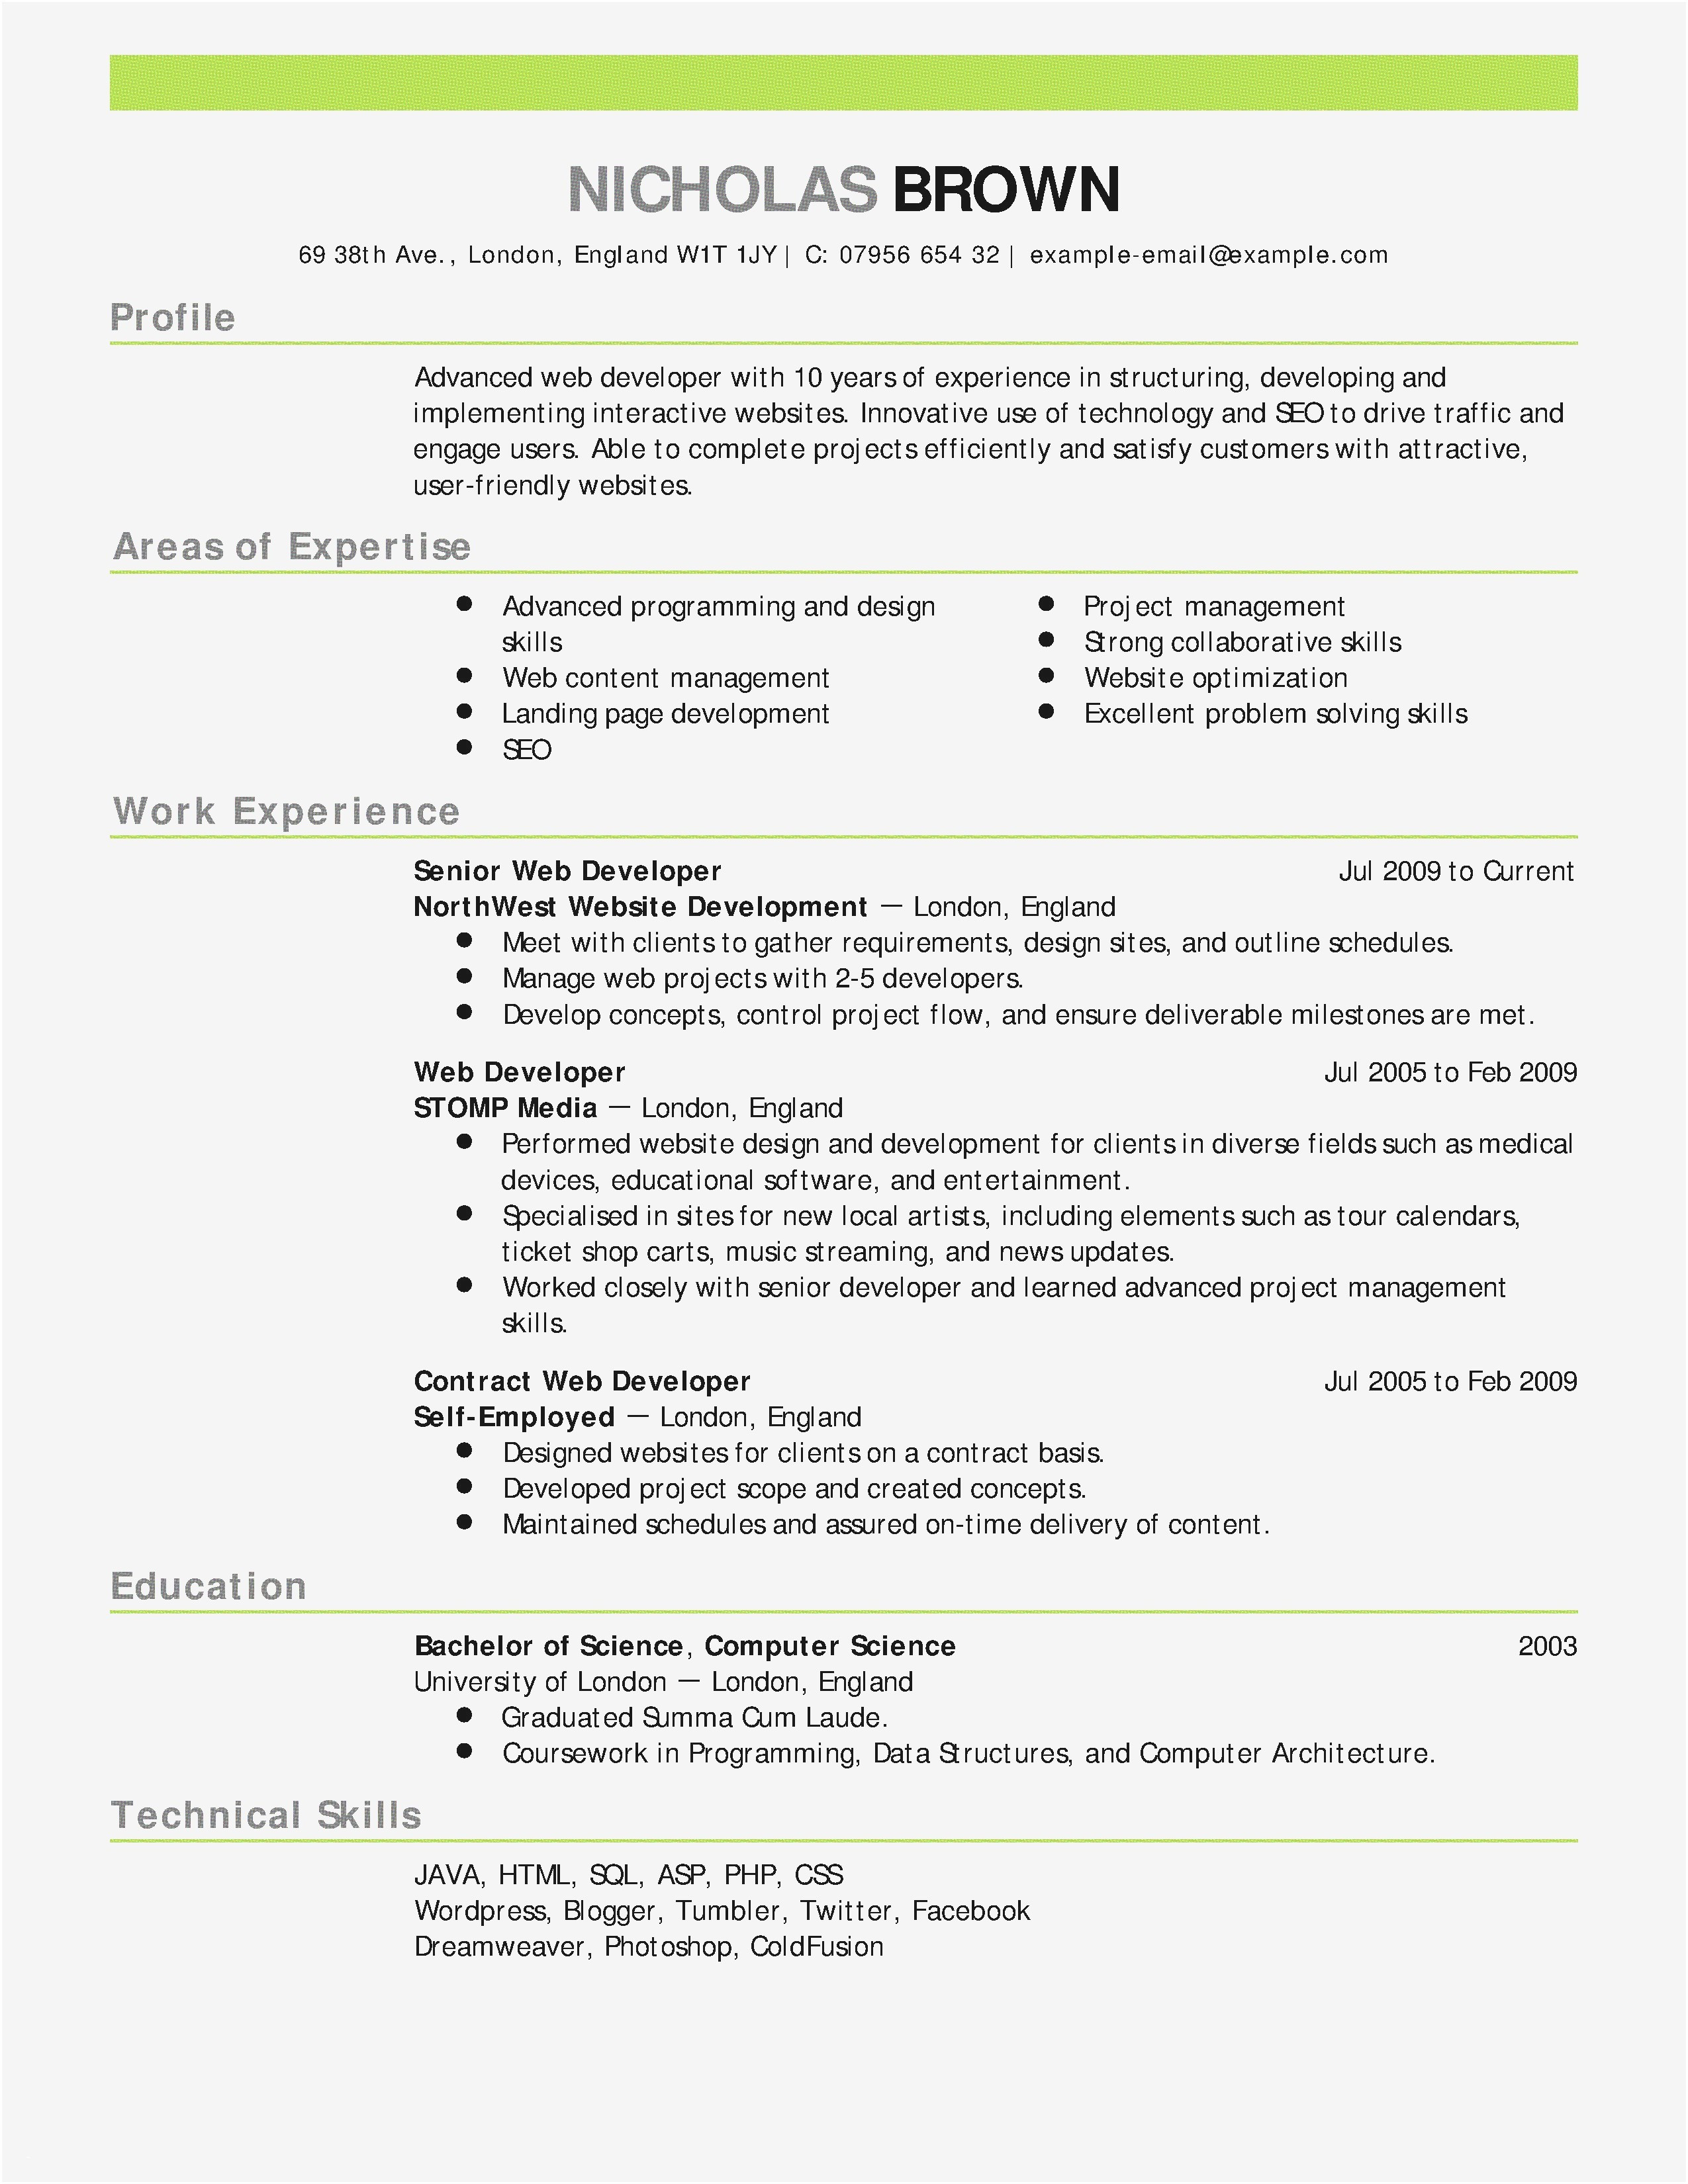 Resume Template Libreoffice - 50 Free Invoice Template Word